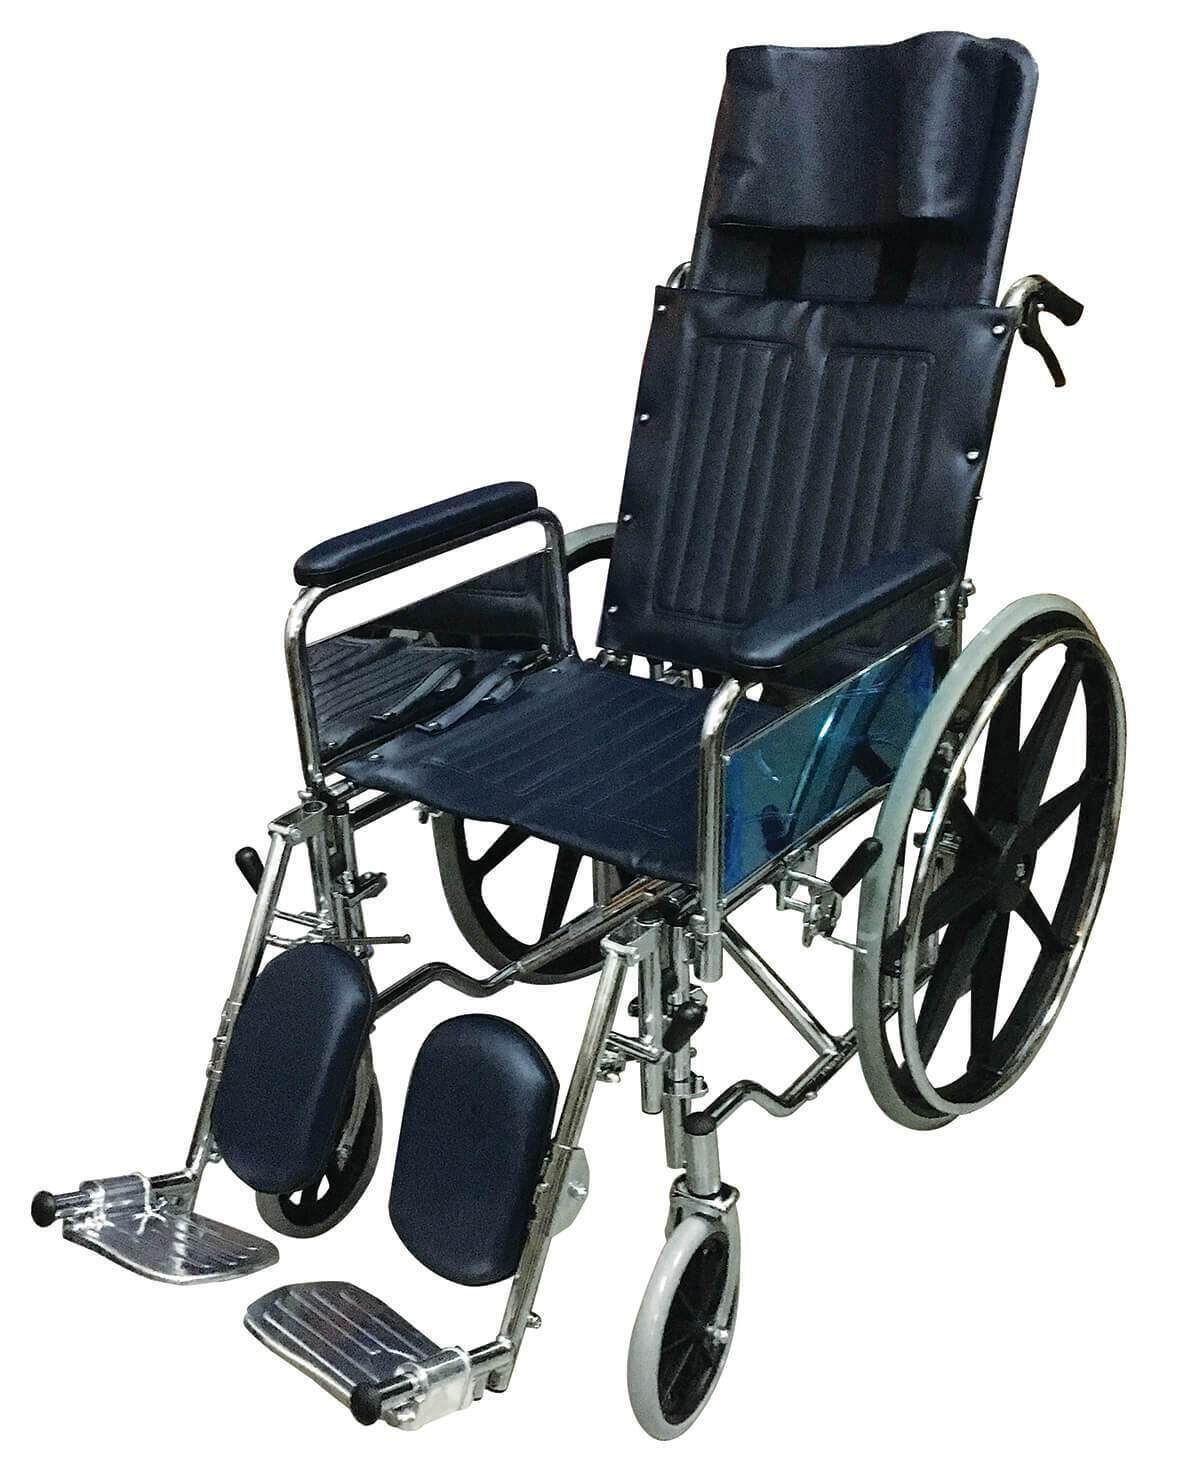 Chrome Steel Reclining Wheelchair (Detachable Armrests, Elevating Footrests, 25kg)